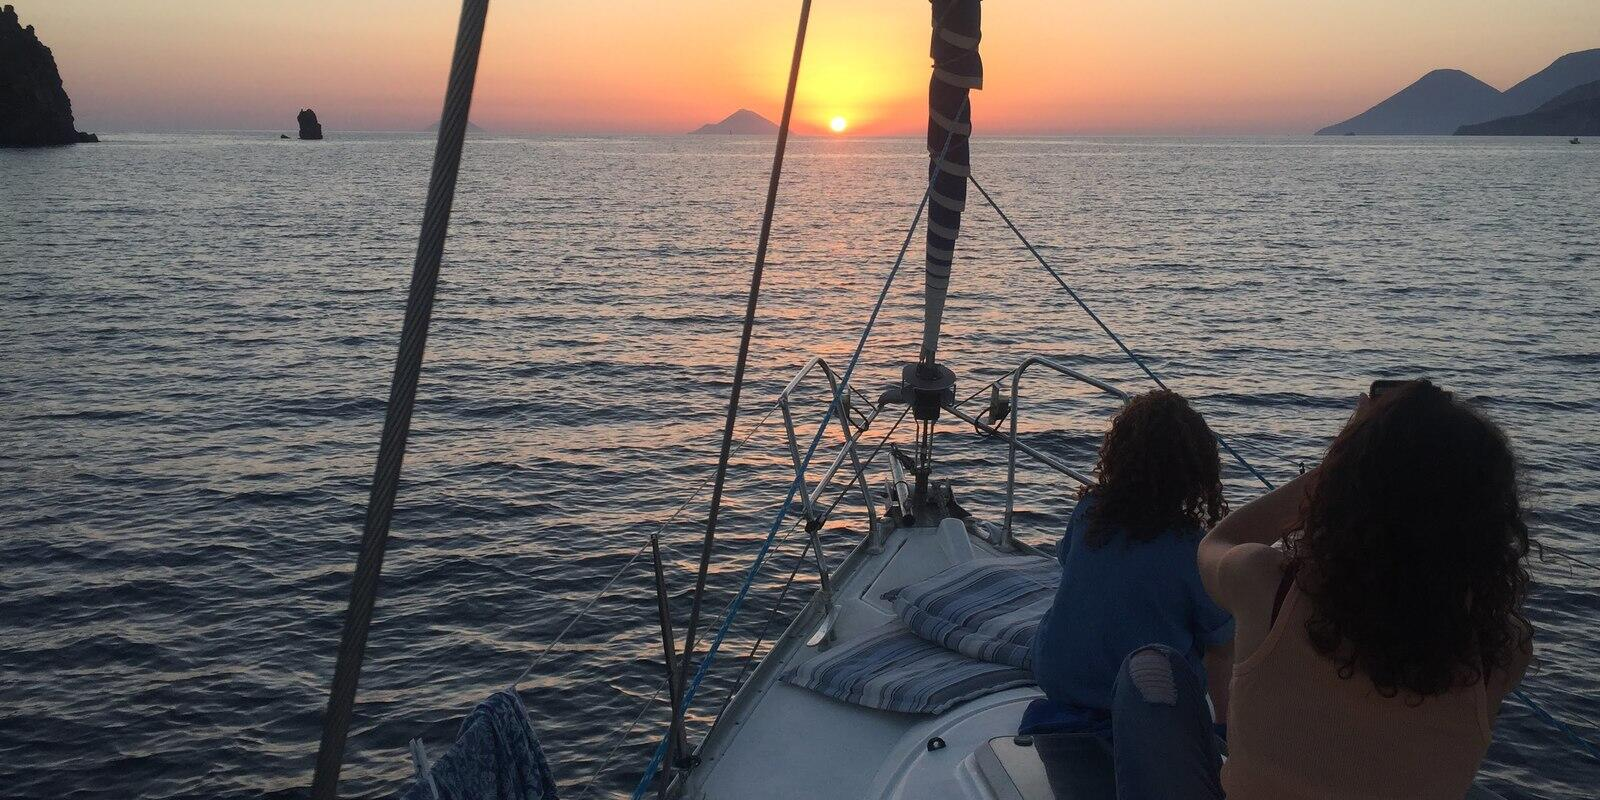 The music of the Aeolian islands